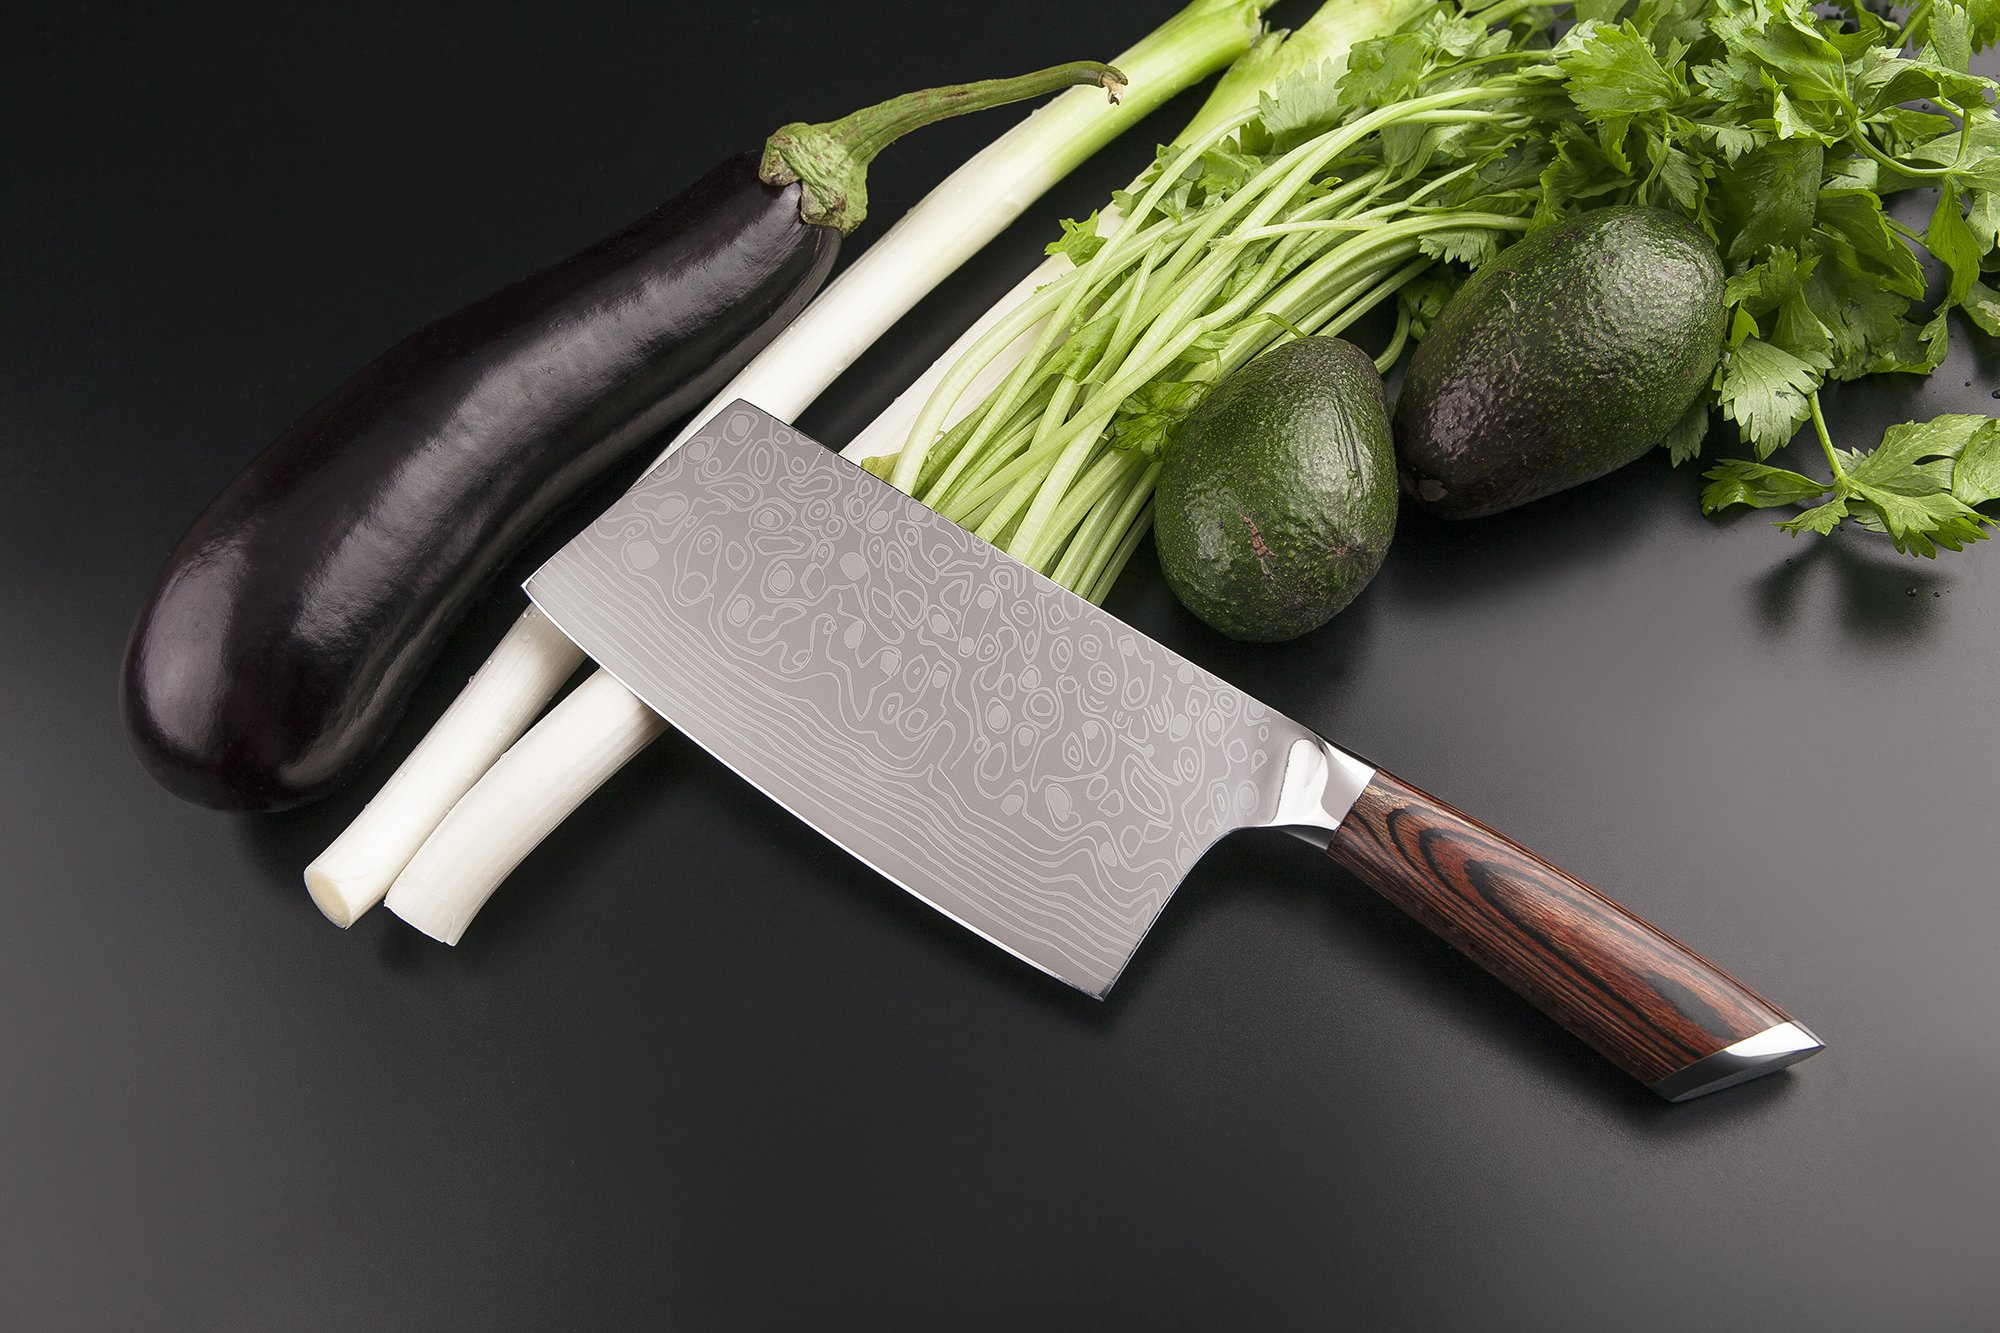 EKUER 7-Inch Chinese Chef's Meat Chopper Cleaver Butcher Vegetable Knife for Home Kitchen or Restaurant,German High Carbon Stainless Steel by EKUER (Image #6)